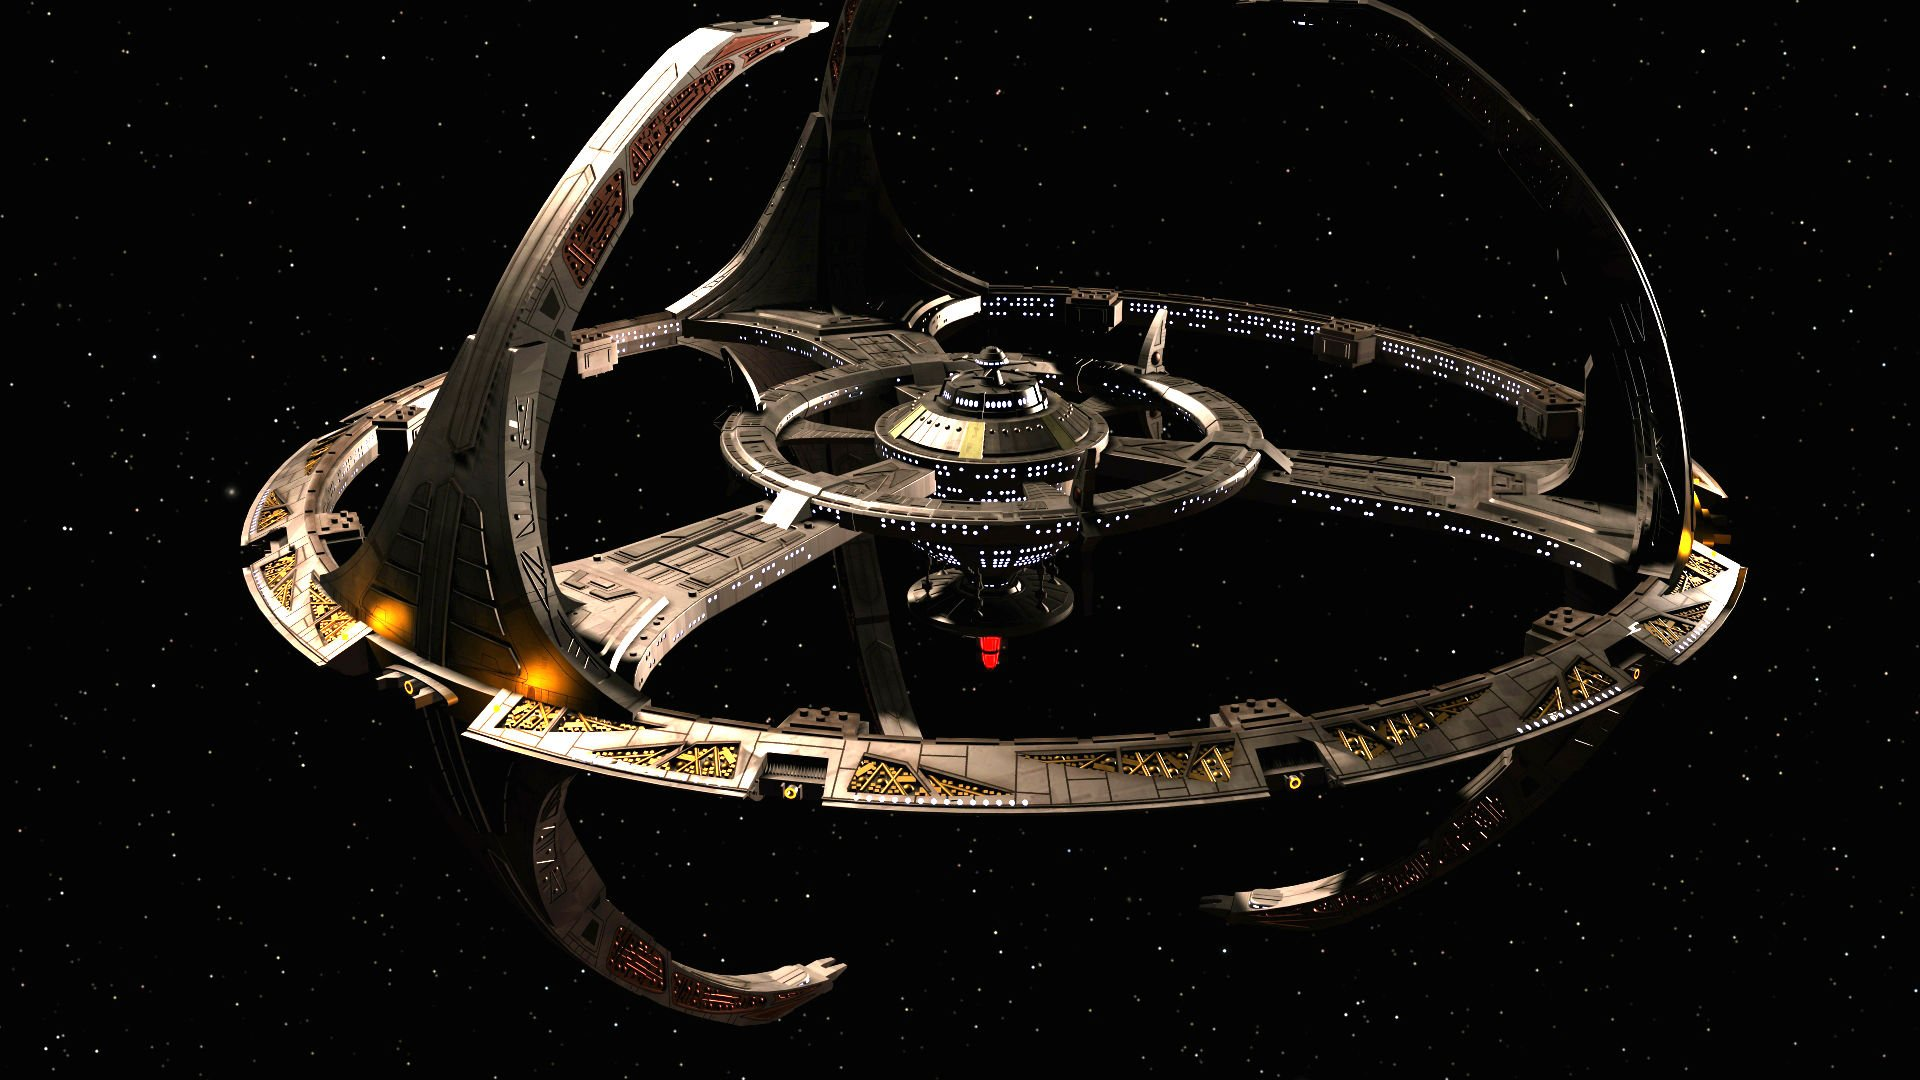 DEEP SPACE NINE Star Trek futuristic television sci fi 1920x1080